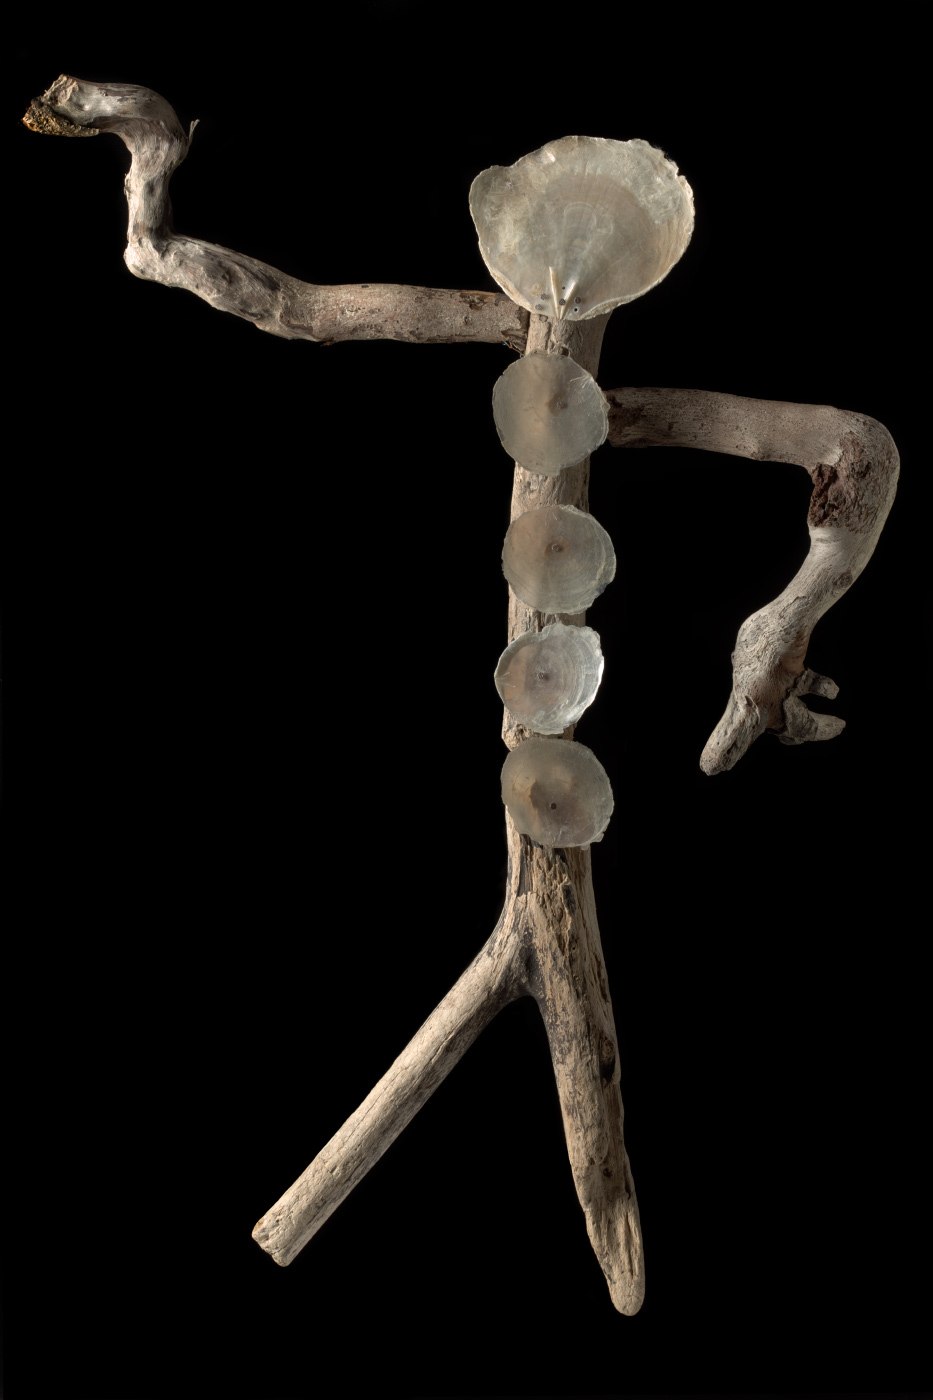 A figurative artwork made from driftwood, pearl shell and copper wire. - click to view larger image